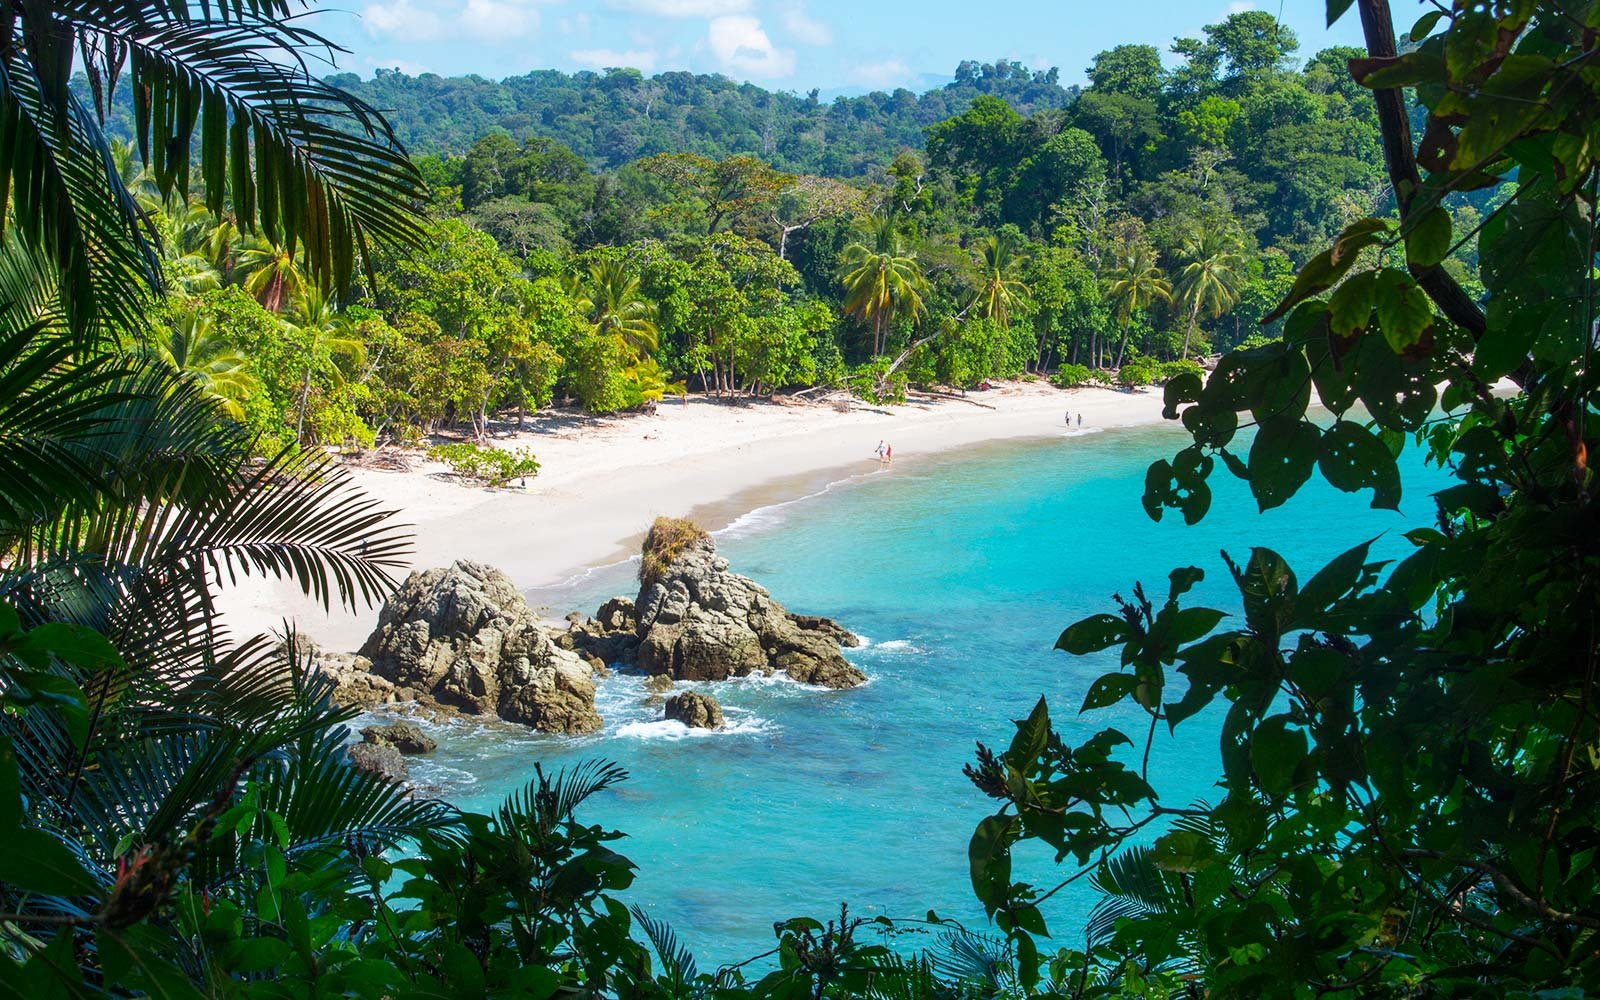 Costa Rica Tropical Rainforest with beach, Best Places to Spend Your Retirement